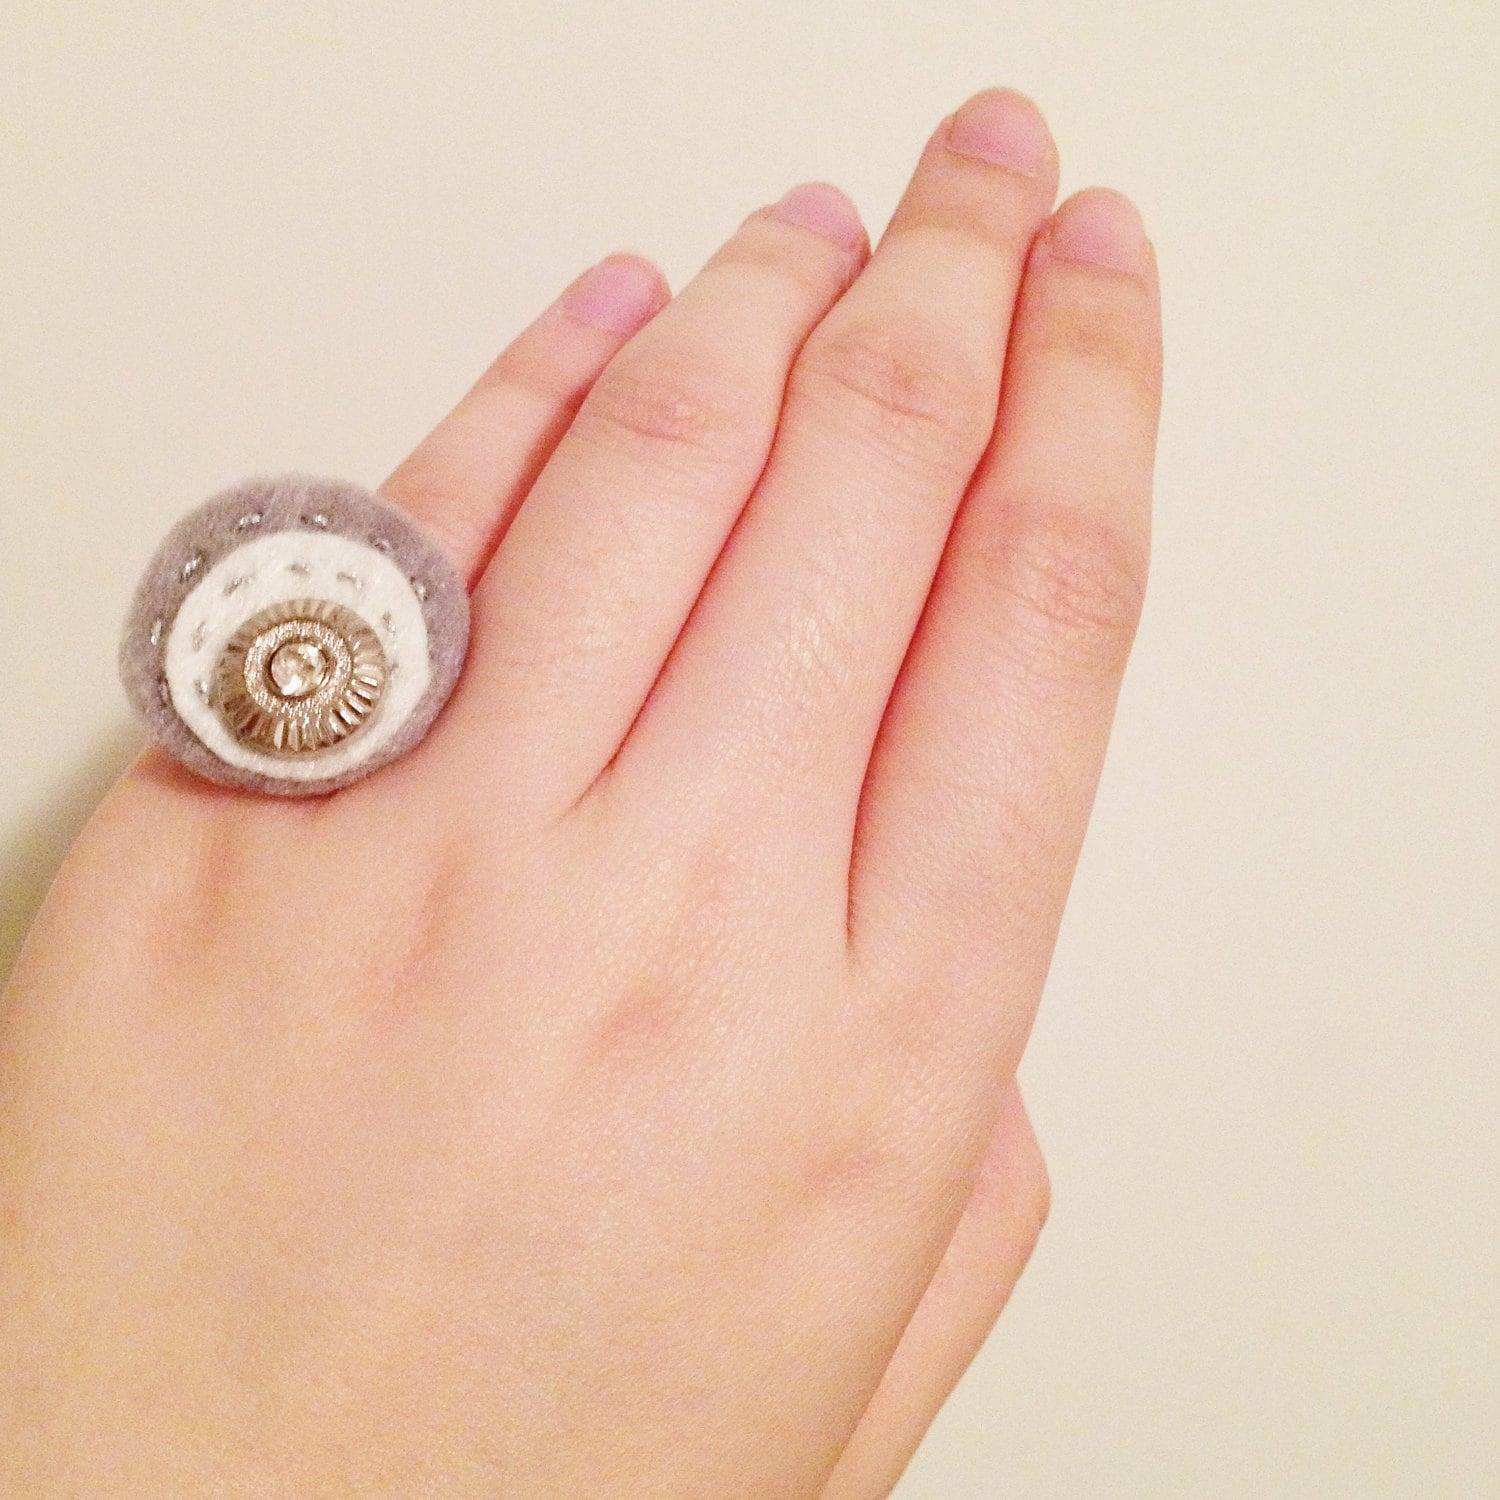 Circle Gray Felt Vintage Button Ring Stitched with Silver Thread, Adjustable Ring, Small Finger Ring, Xmas Gift, Christmas Gift